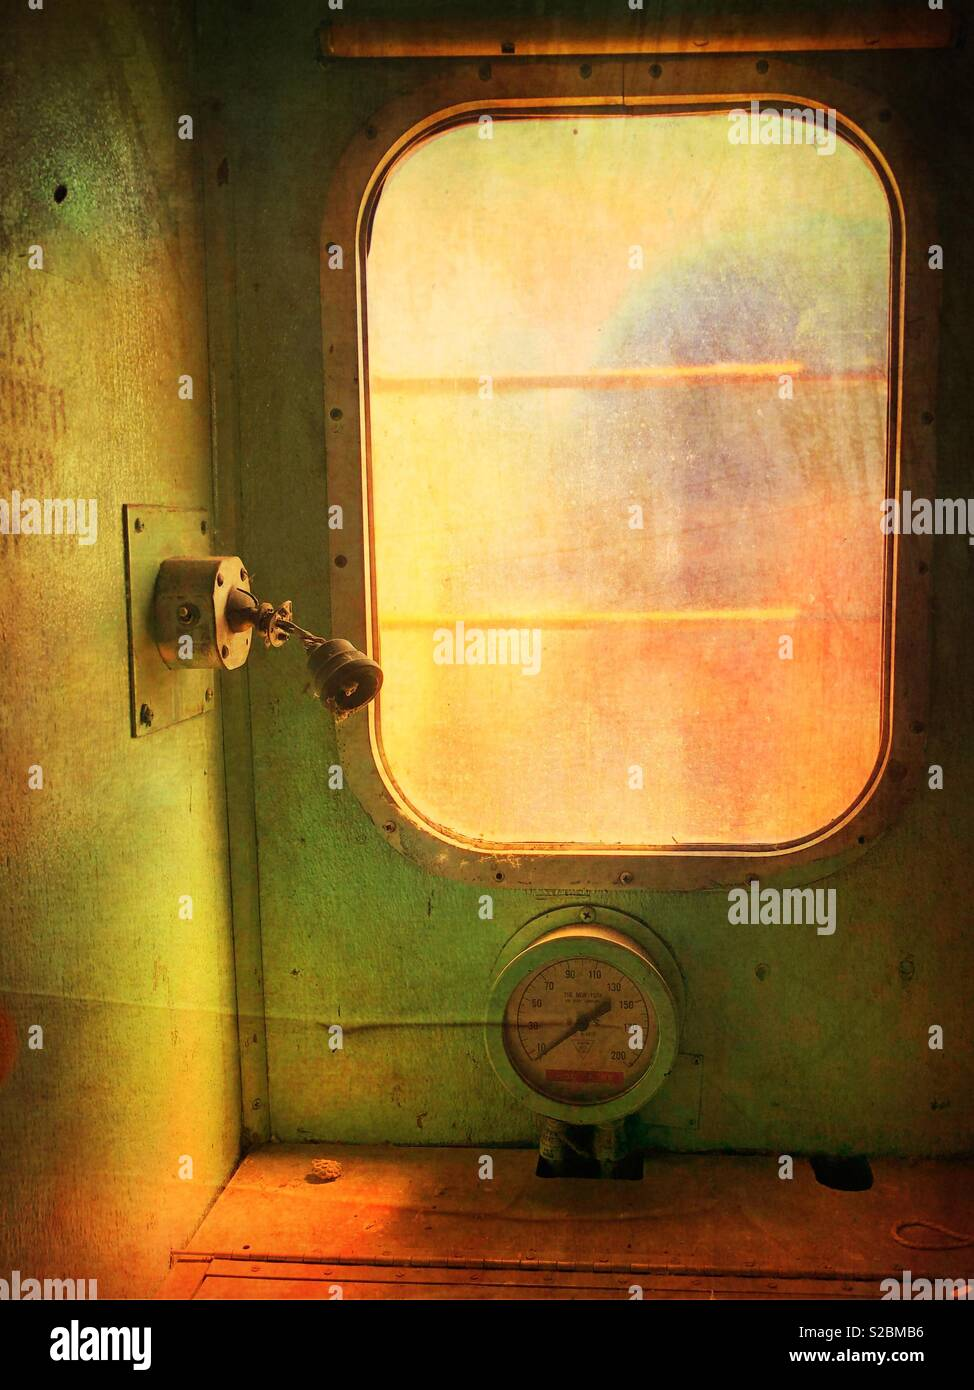 Window in an old abandoned train car. - Stock Image